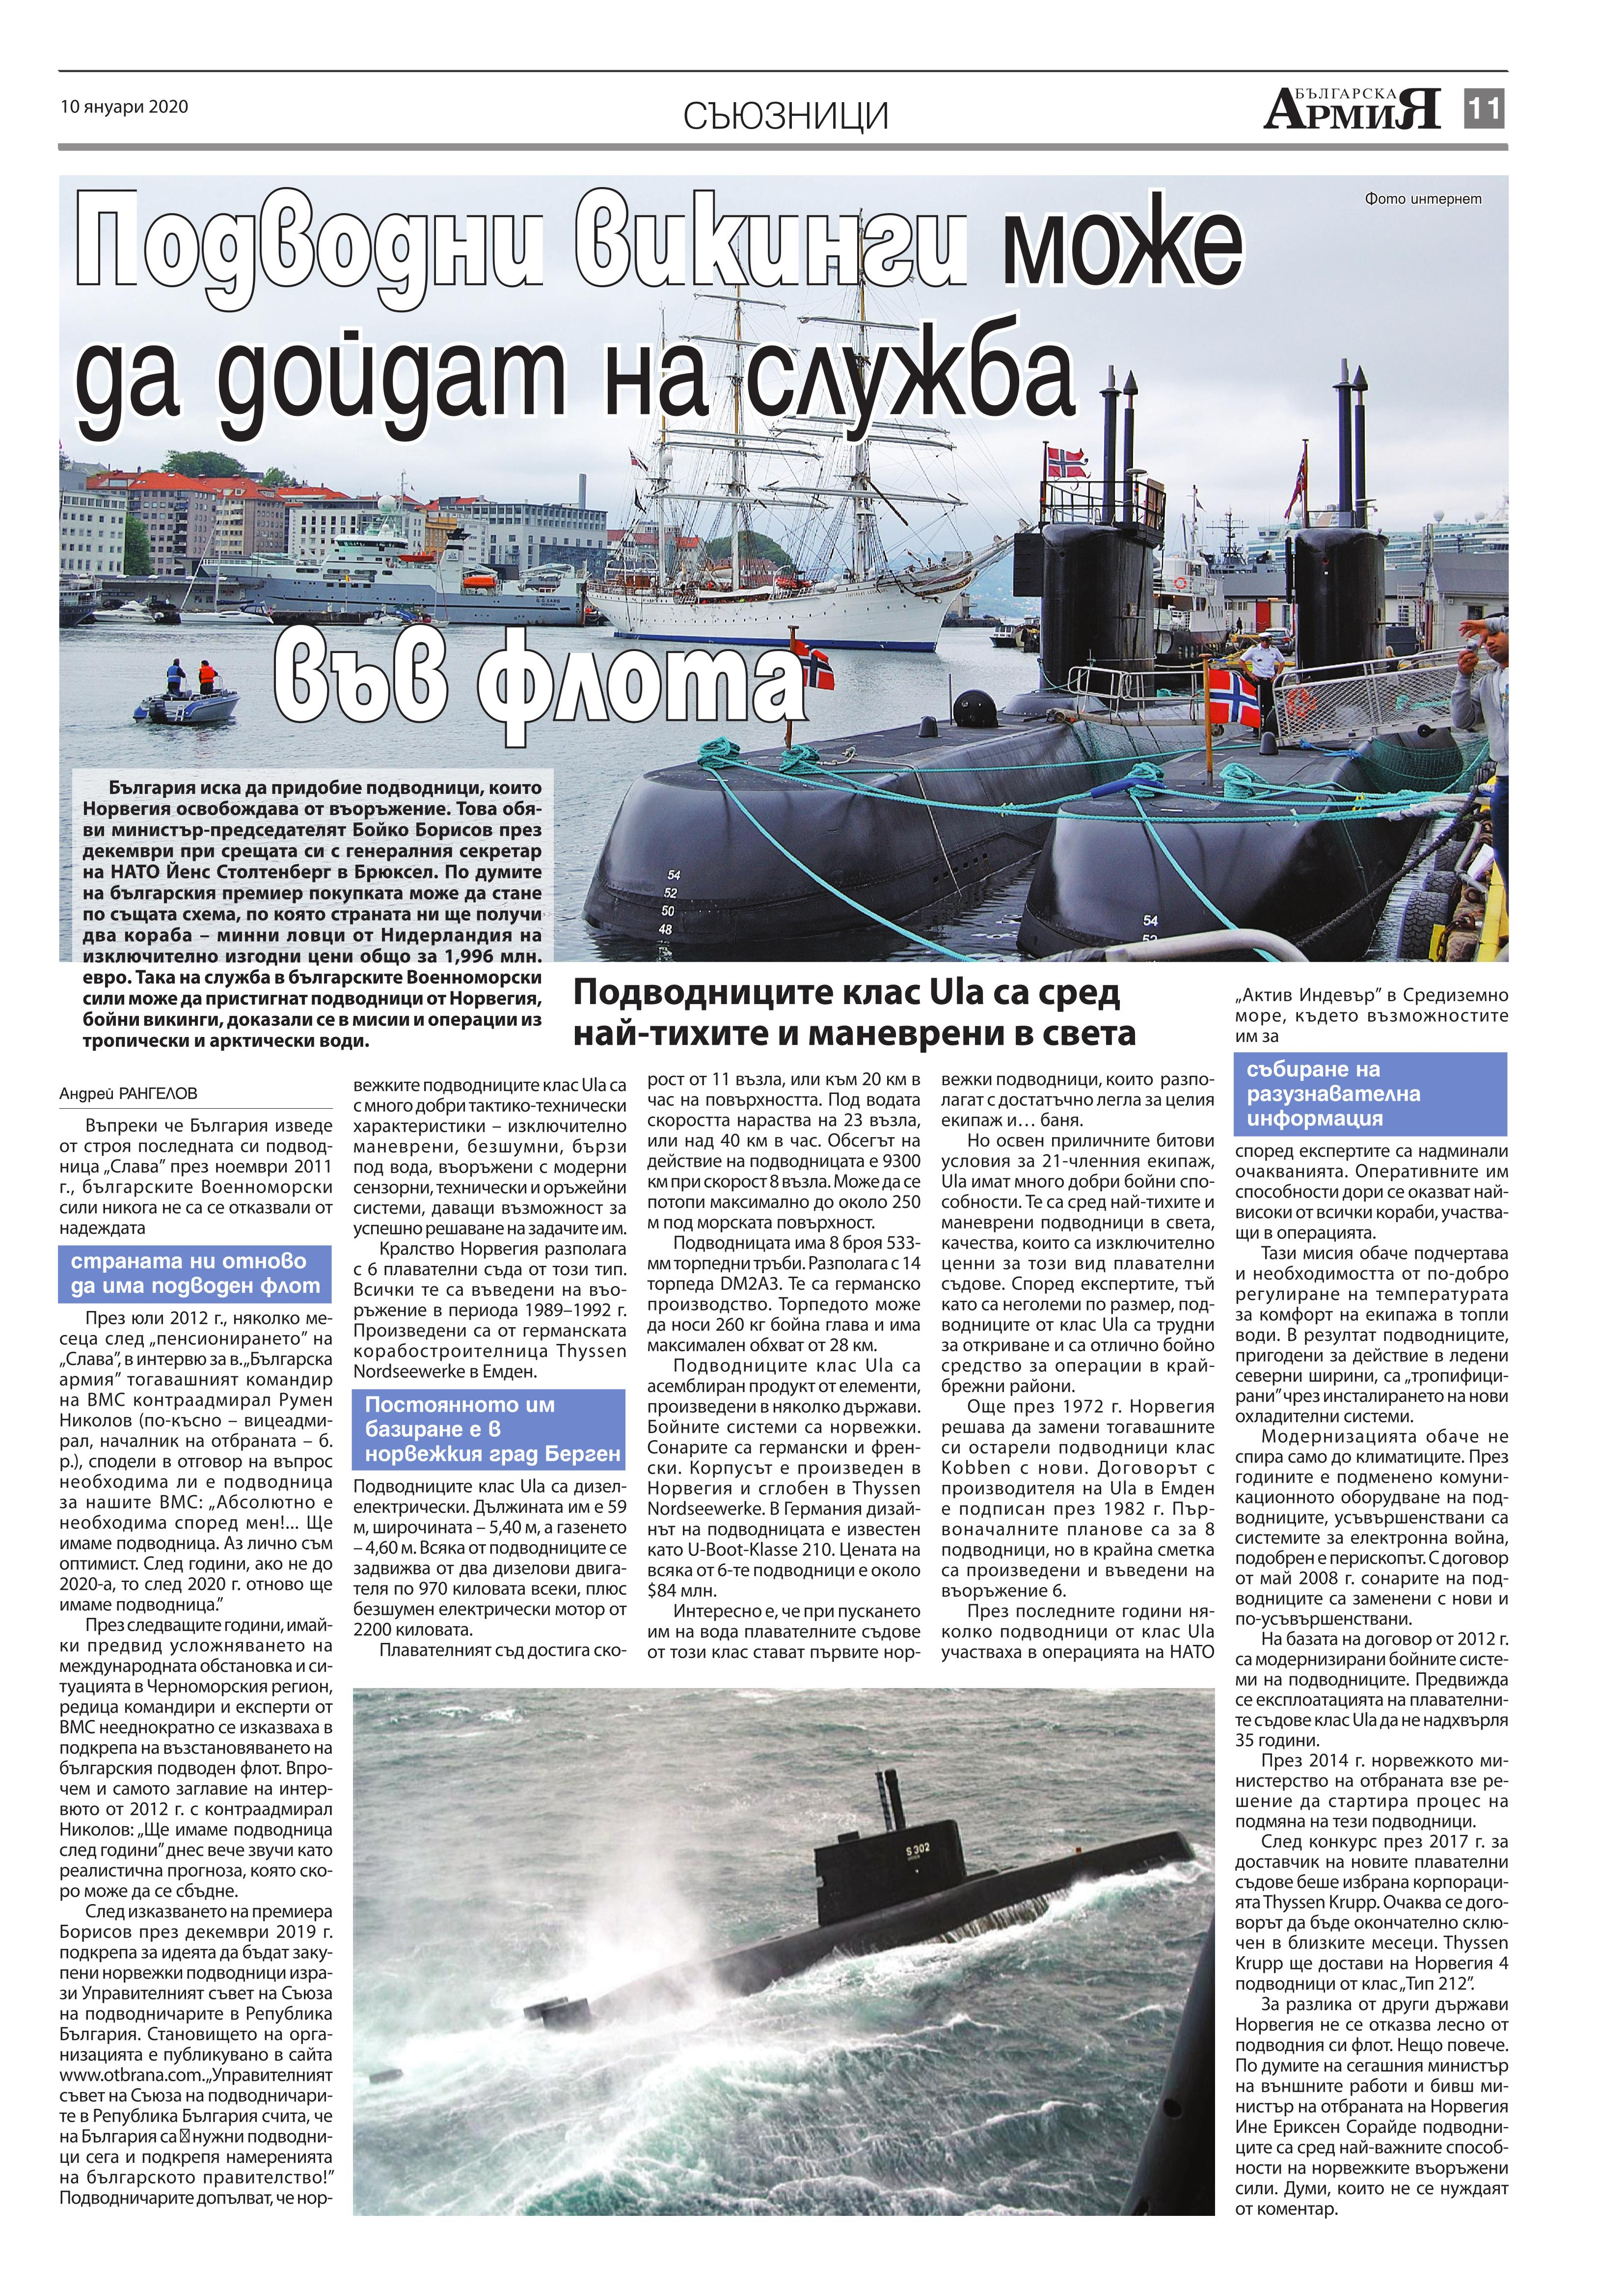 https://armymedia.bg/wp-content/uploads/2015/06/11.page1_-122.jpg